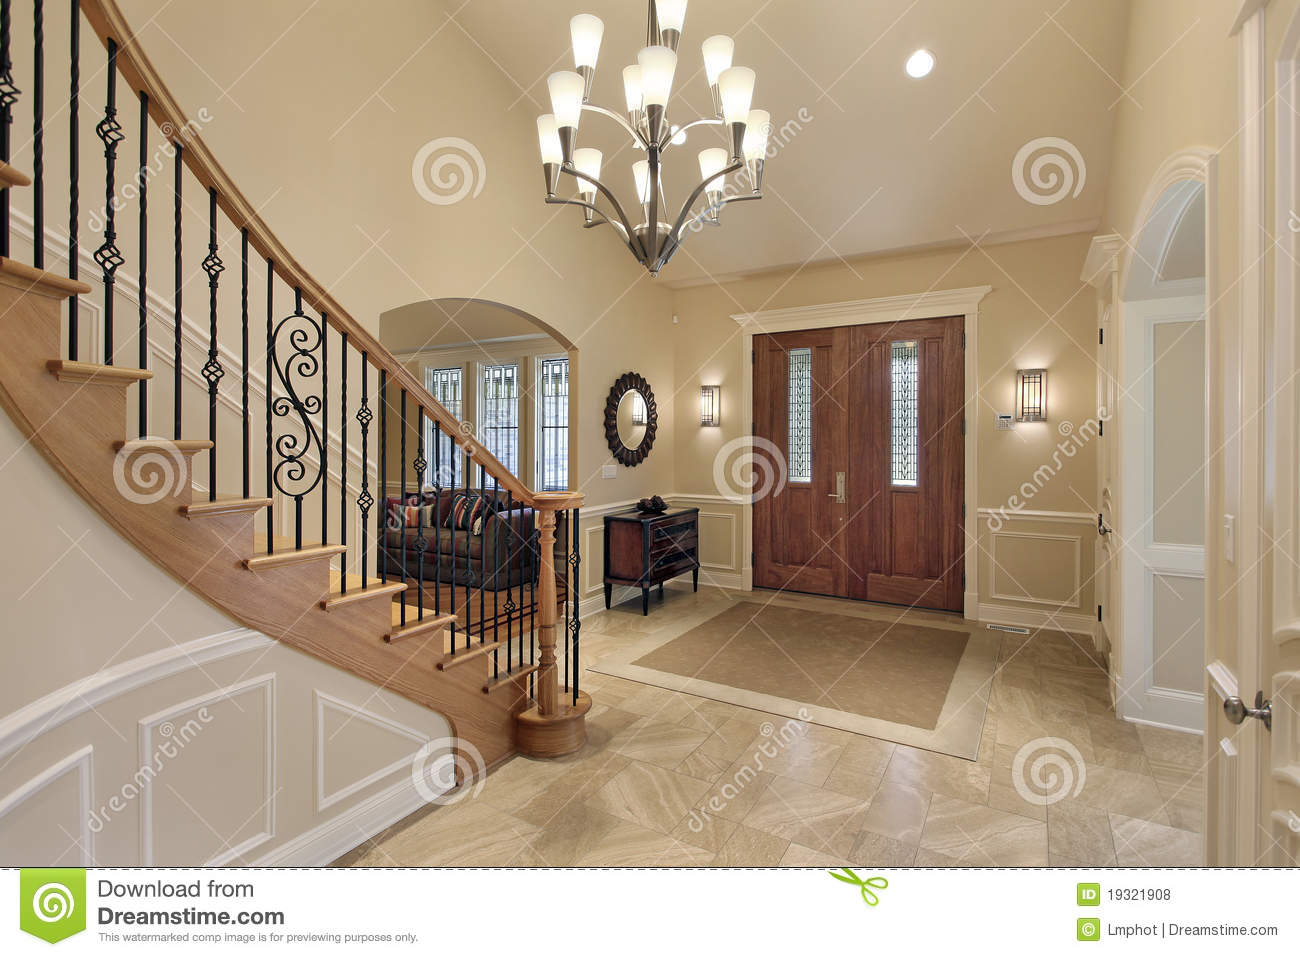 Foyer Staircase Images : Foyer with curved staircase royalty free stock photos